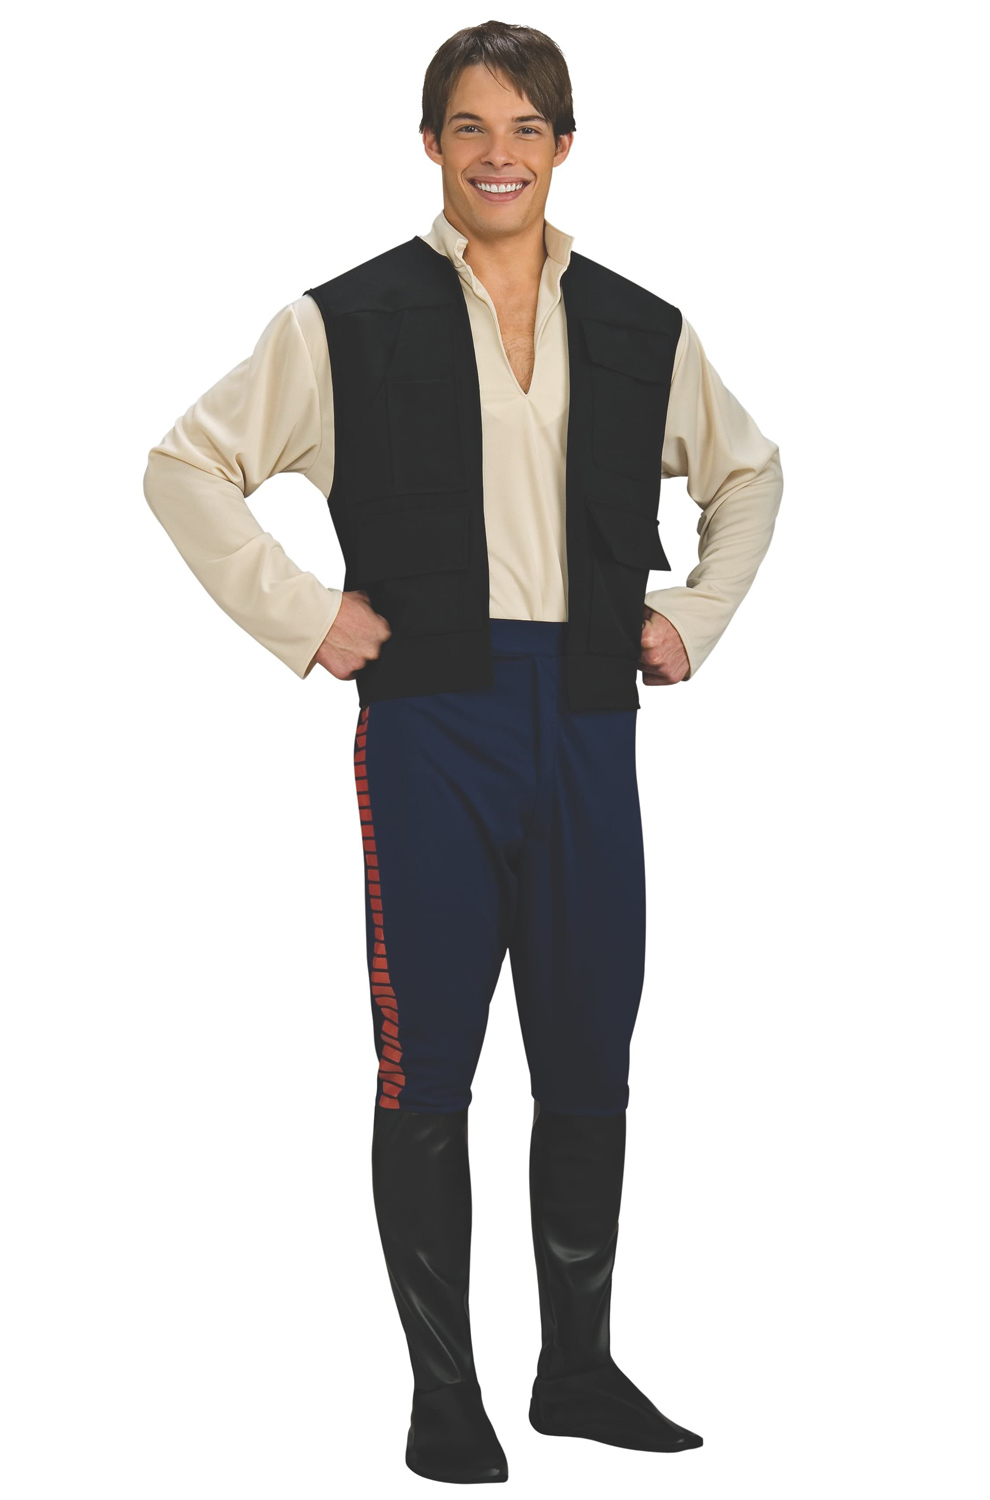 Click Here to buy Star Wars Deluxe Han Solo Adult Costume from Pure Costumes